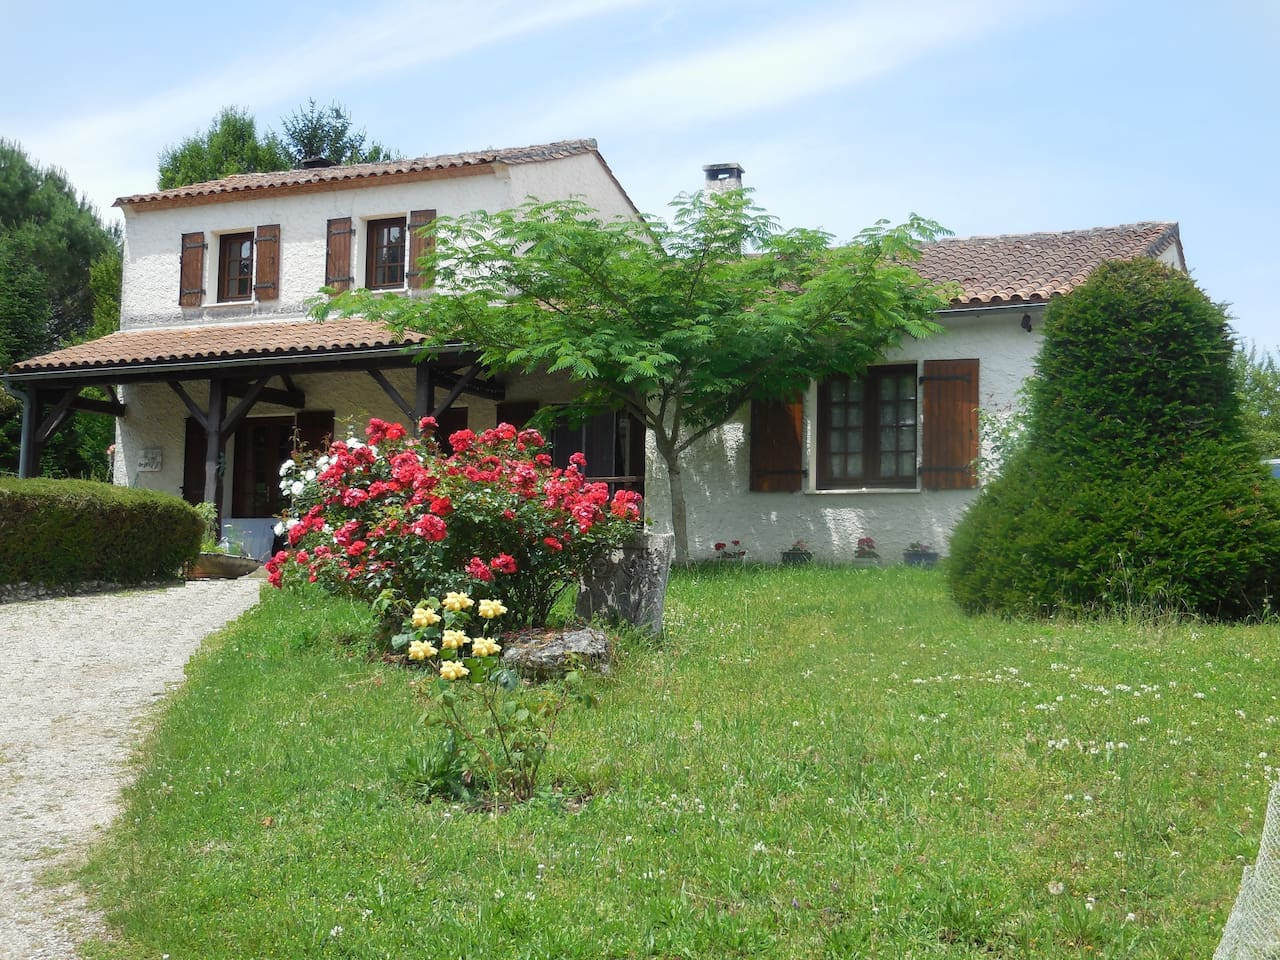 """""""La Madriguera"""" is a forty year old house, sitting on two acres of parkland, outside the little village of Gardes le Pontaroux, close to the public pool and holiday village and on a regular bus route between Angouleme and Villebois-Lavalette."""